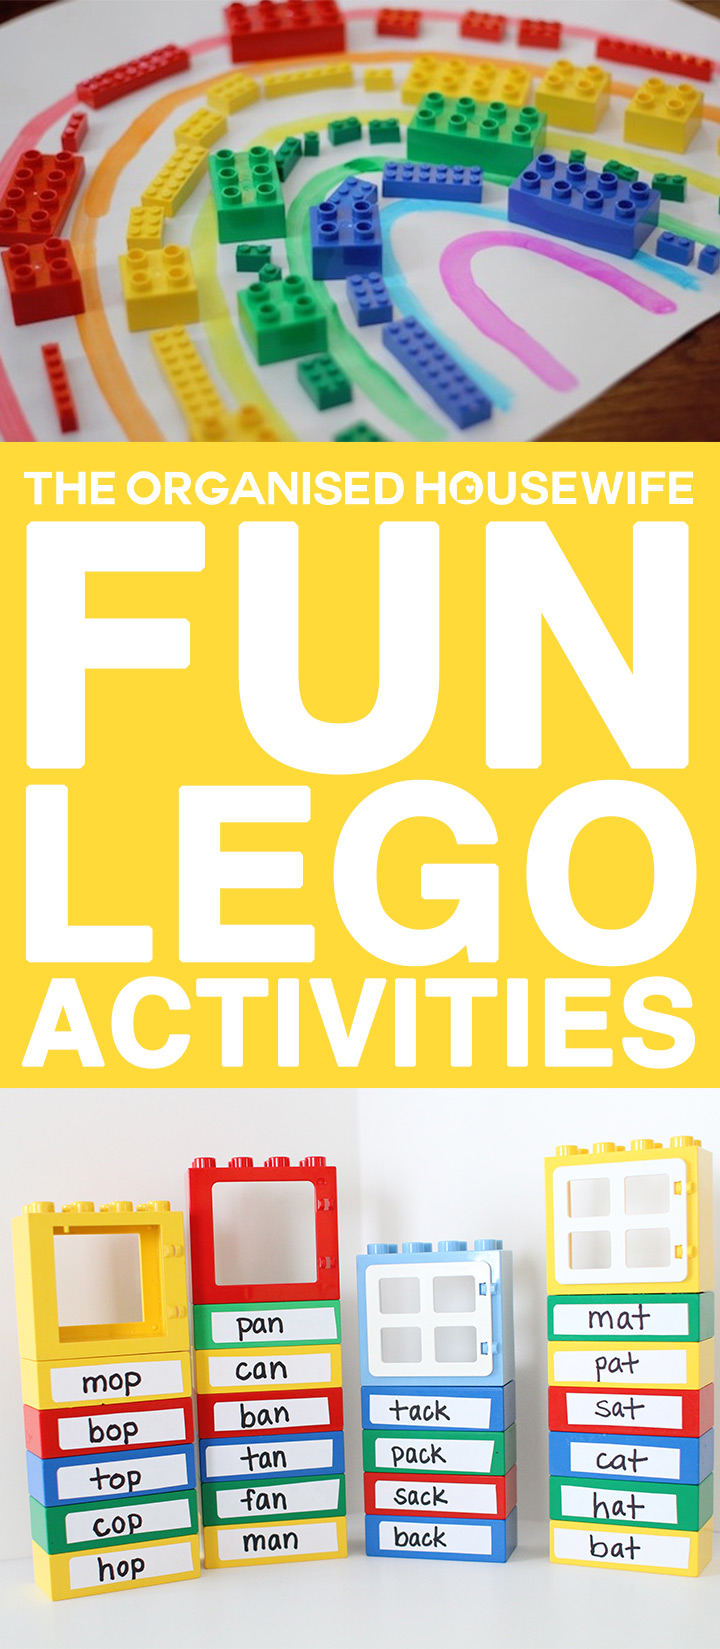 Lego wlll not only does it occupy them for hours on end, but it is also a good way for them to let their imaginations run wild, develop problem-solving skills and enhance their spatial abilities. Here is a collection of some Lego activities that will suit a variety of ages. Your kids will love to build these and you can join in too!